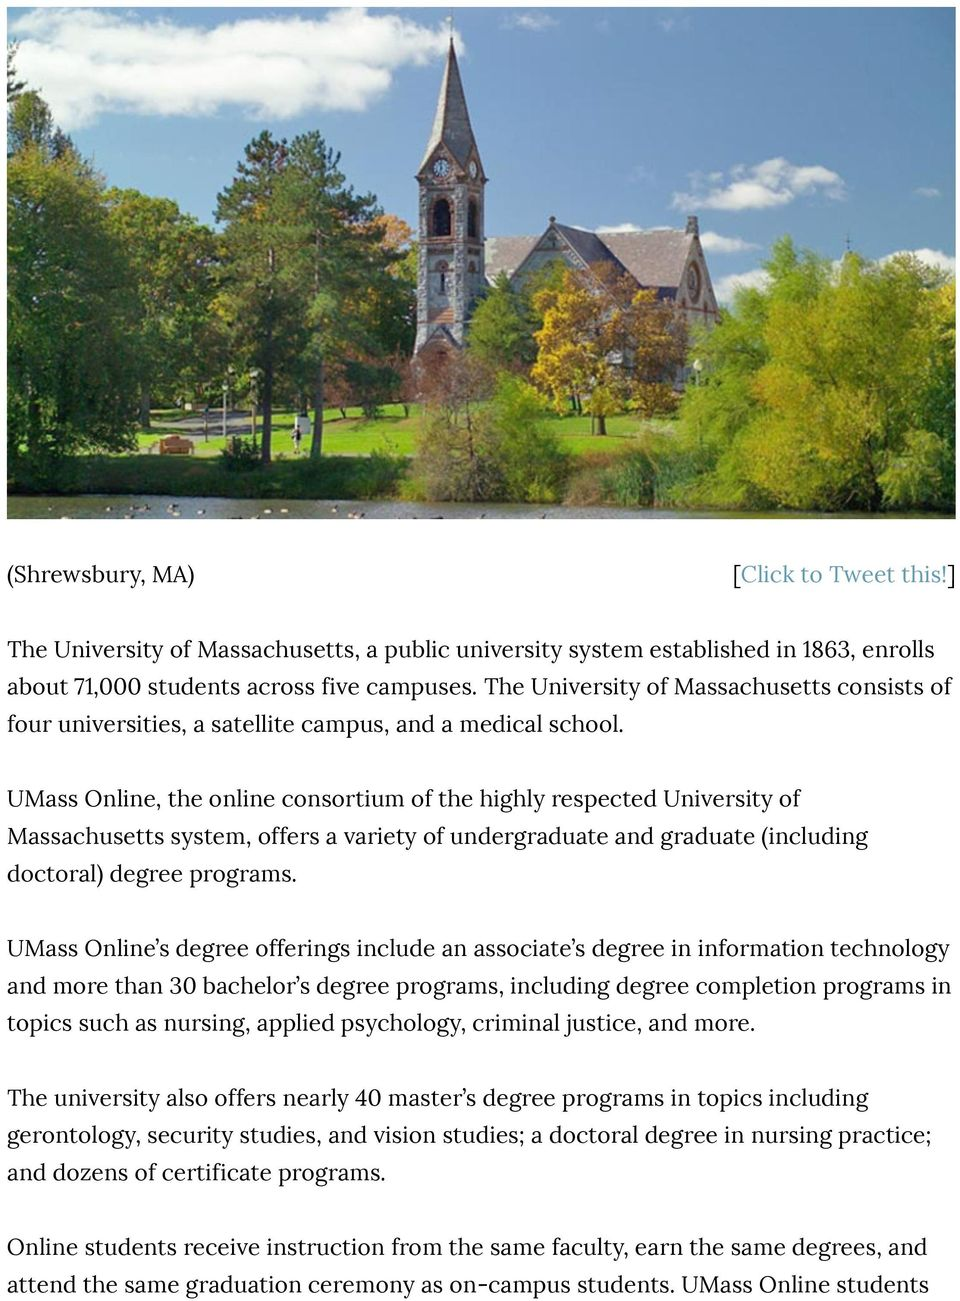 UMass Online, the online consortium of the highly respected University of Massachusetts system, offers a variety of undergraduate and graduate (including doctoral) degree programs.